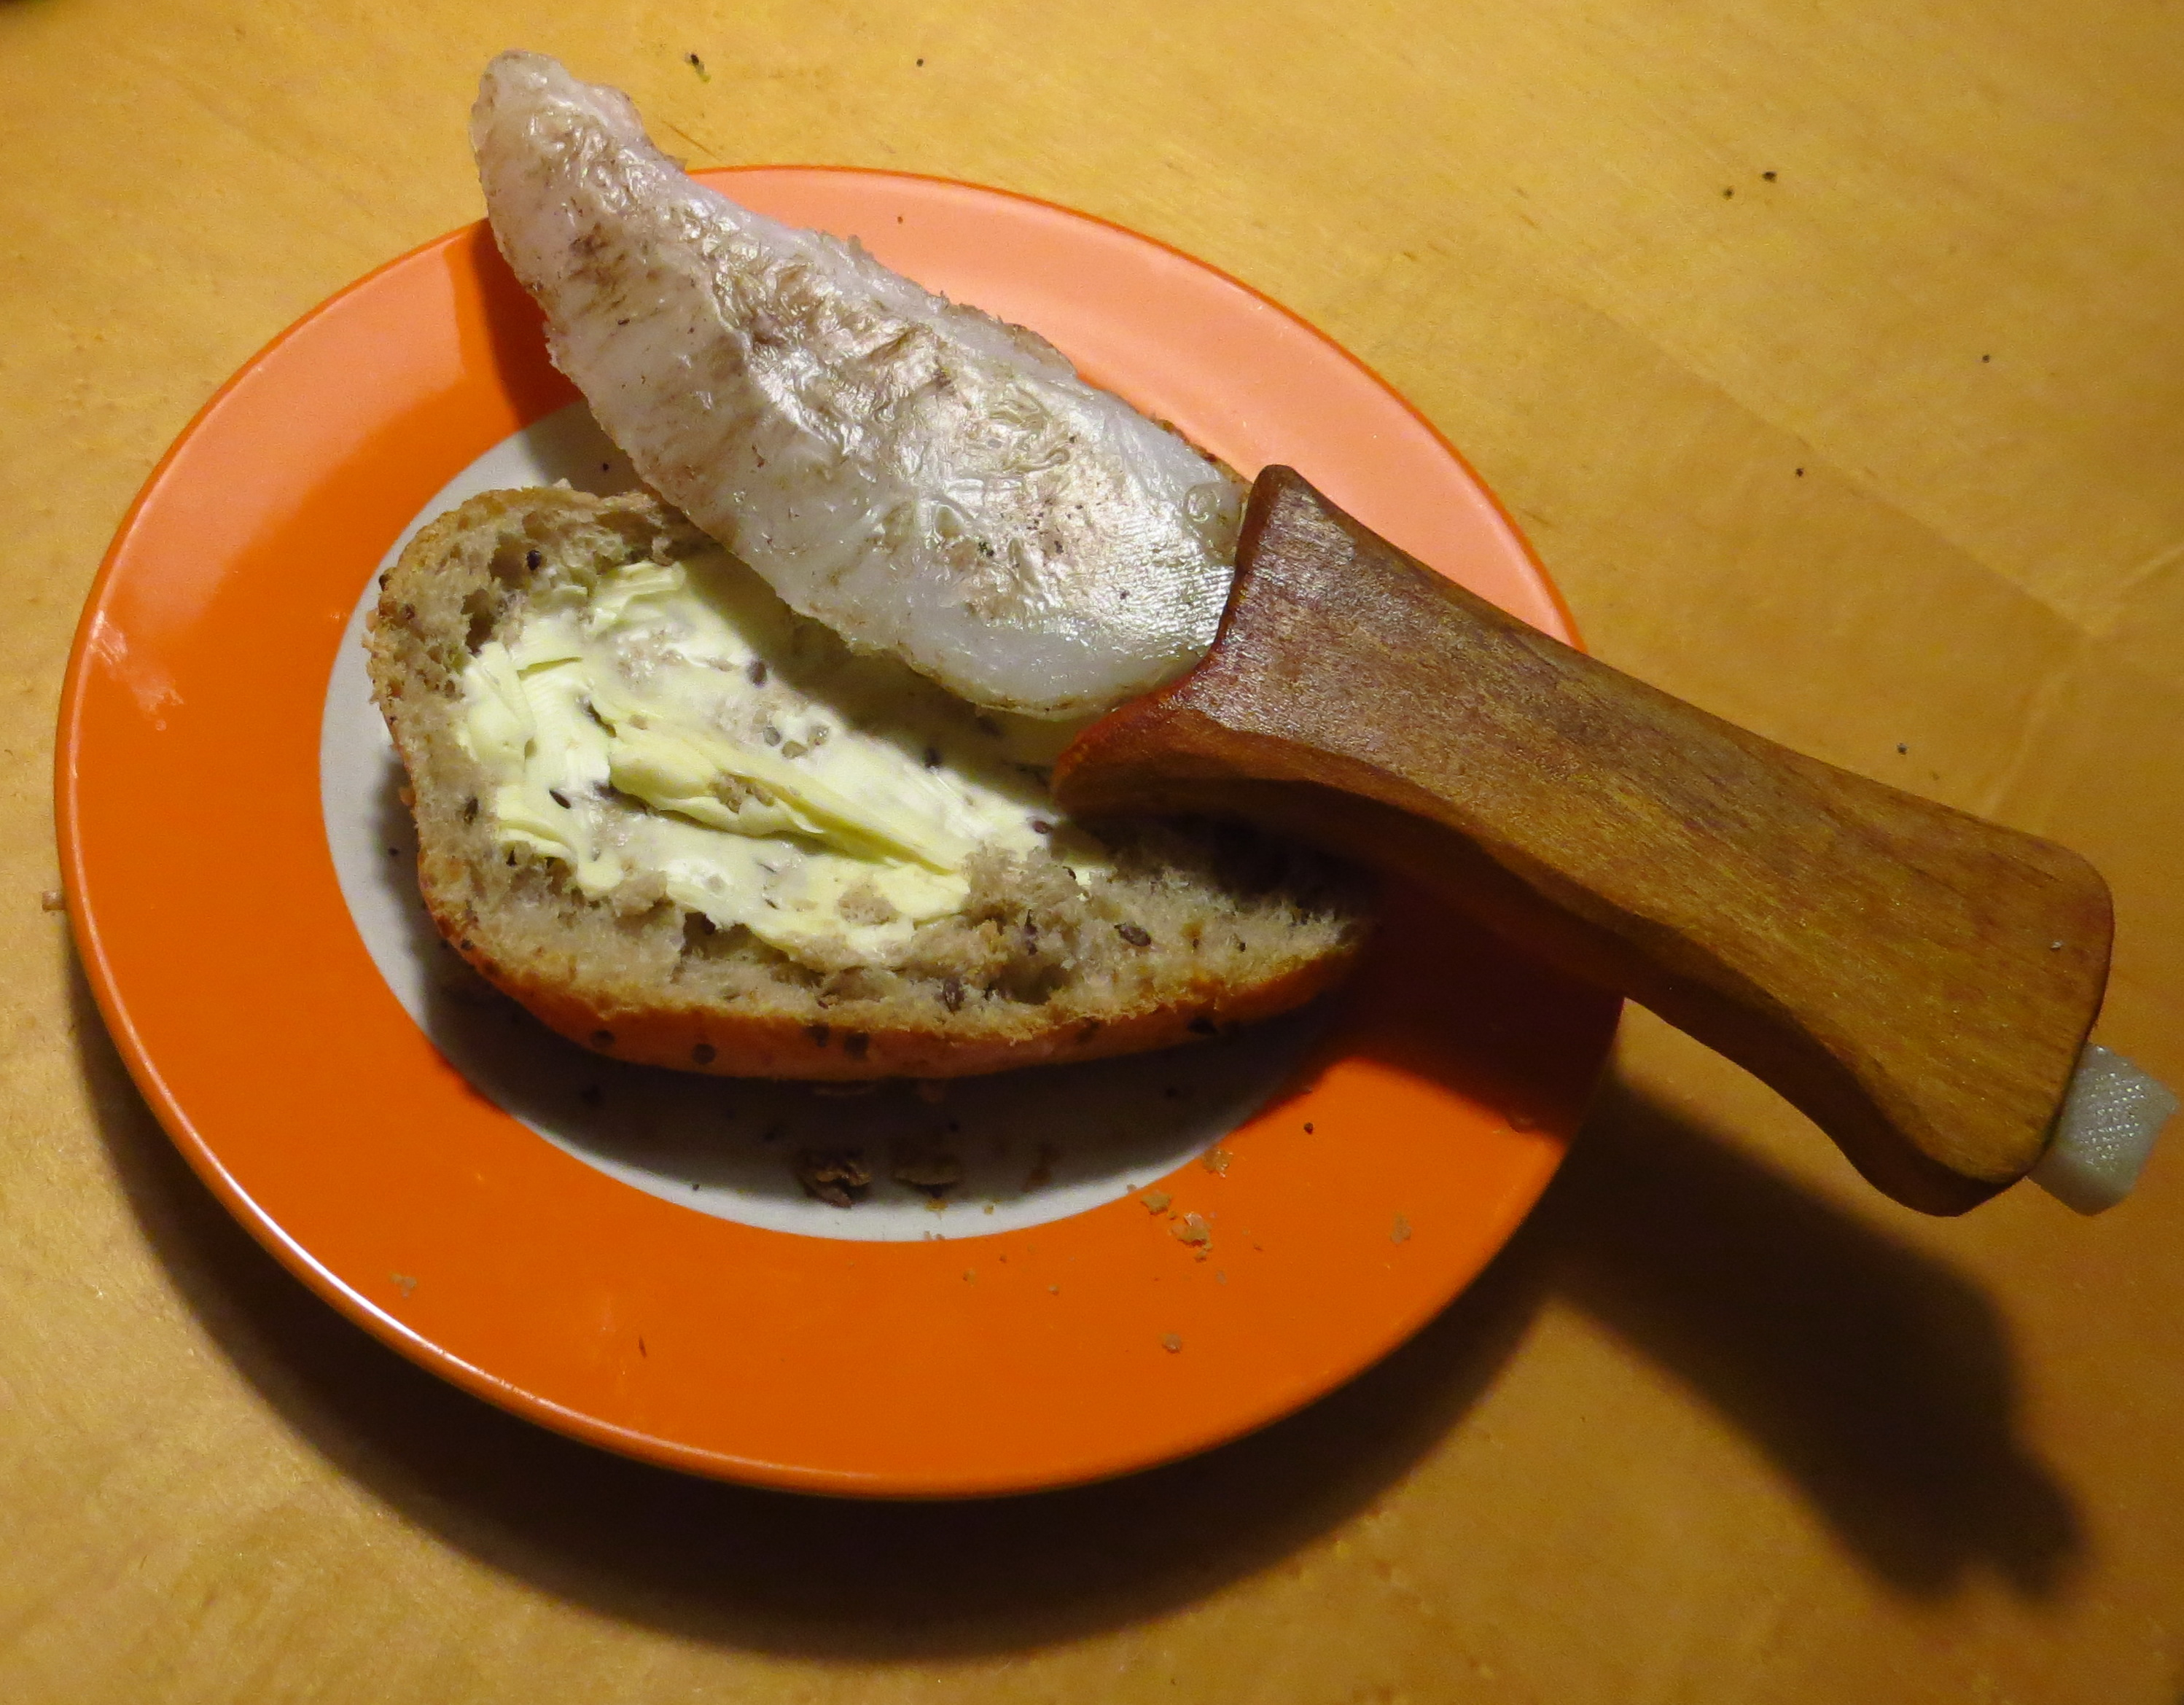 A plastic knife modelling in front of a buttered bun.